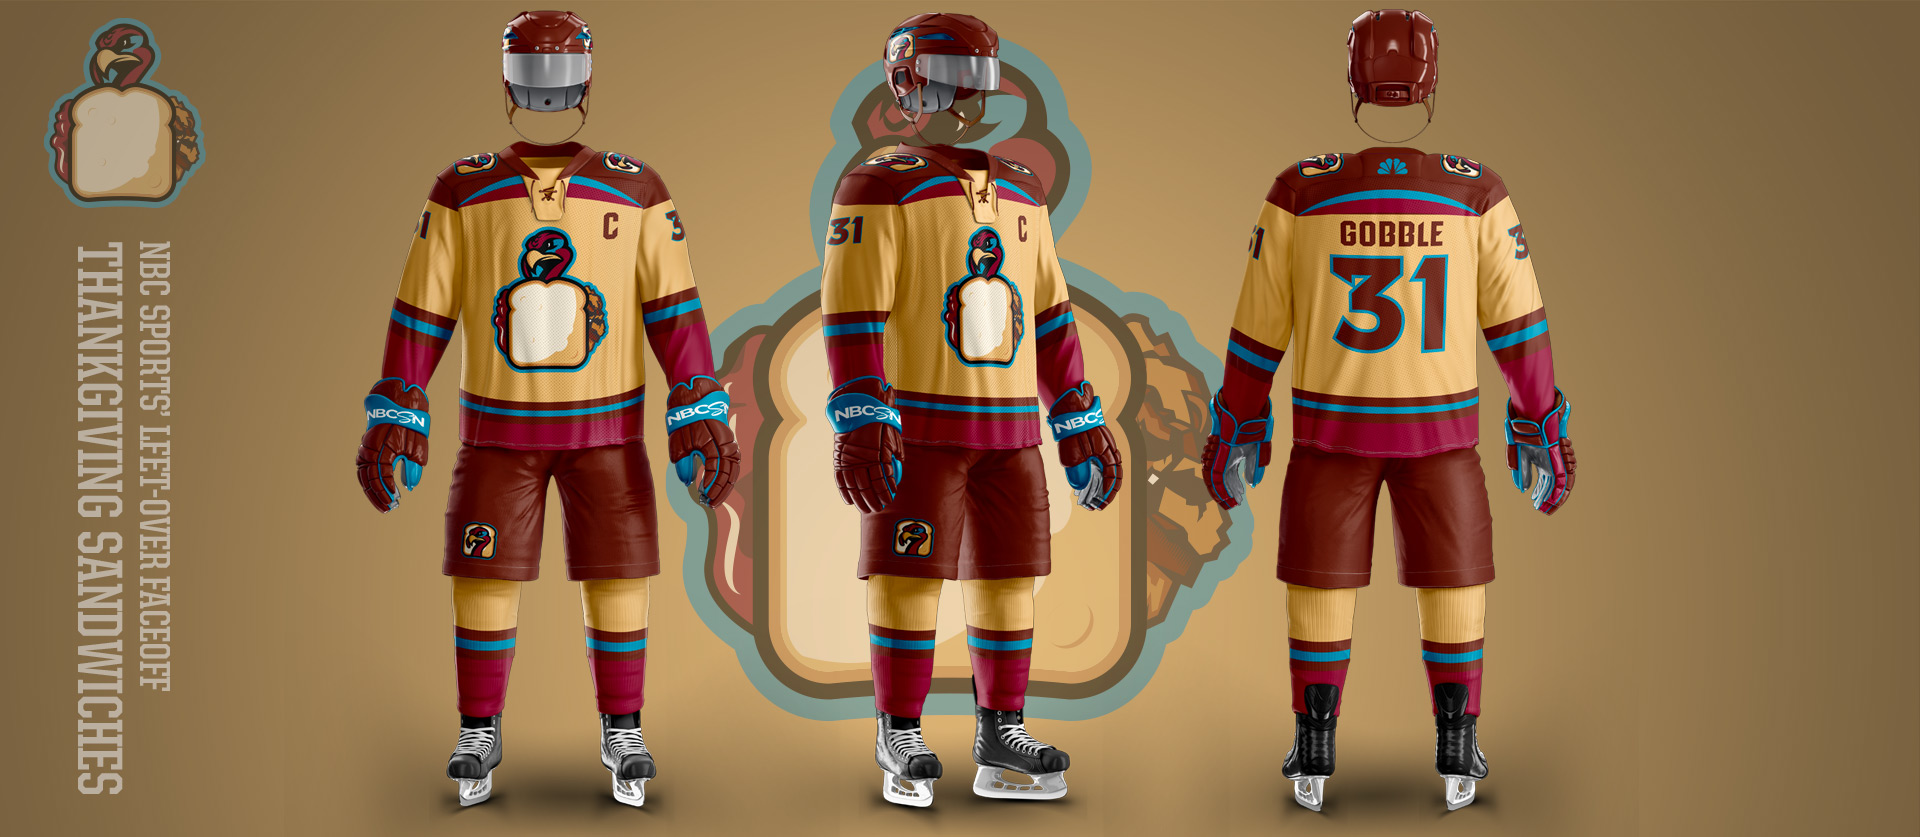 Gobbler Sandwich - Football Uniform Design for NBC Sports Thanksgiving Second Feast Face-Off